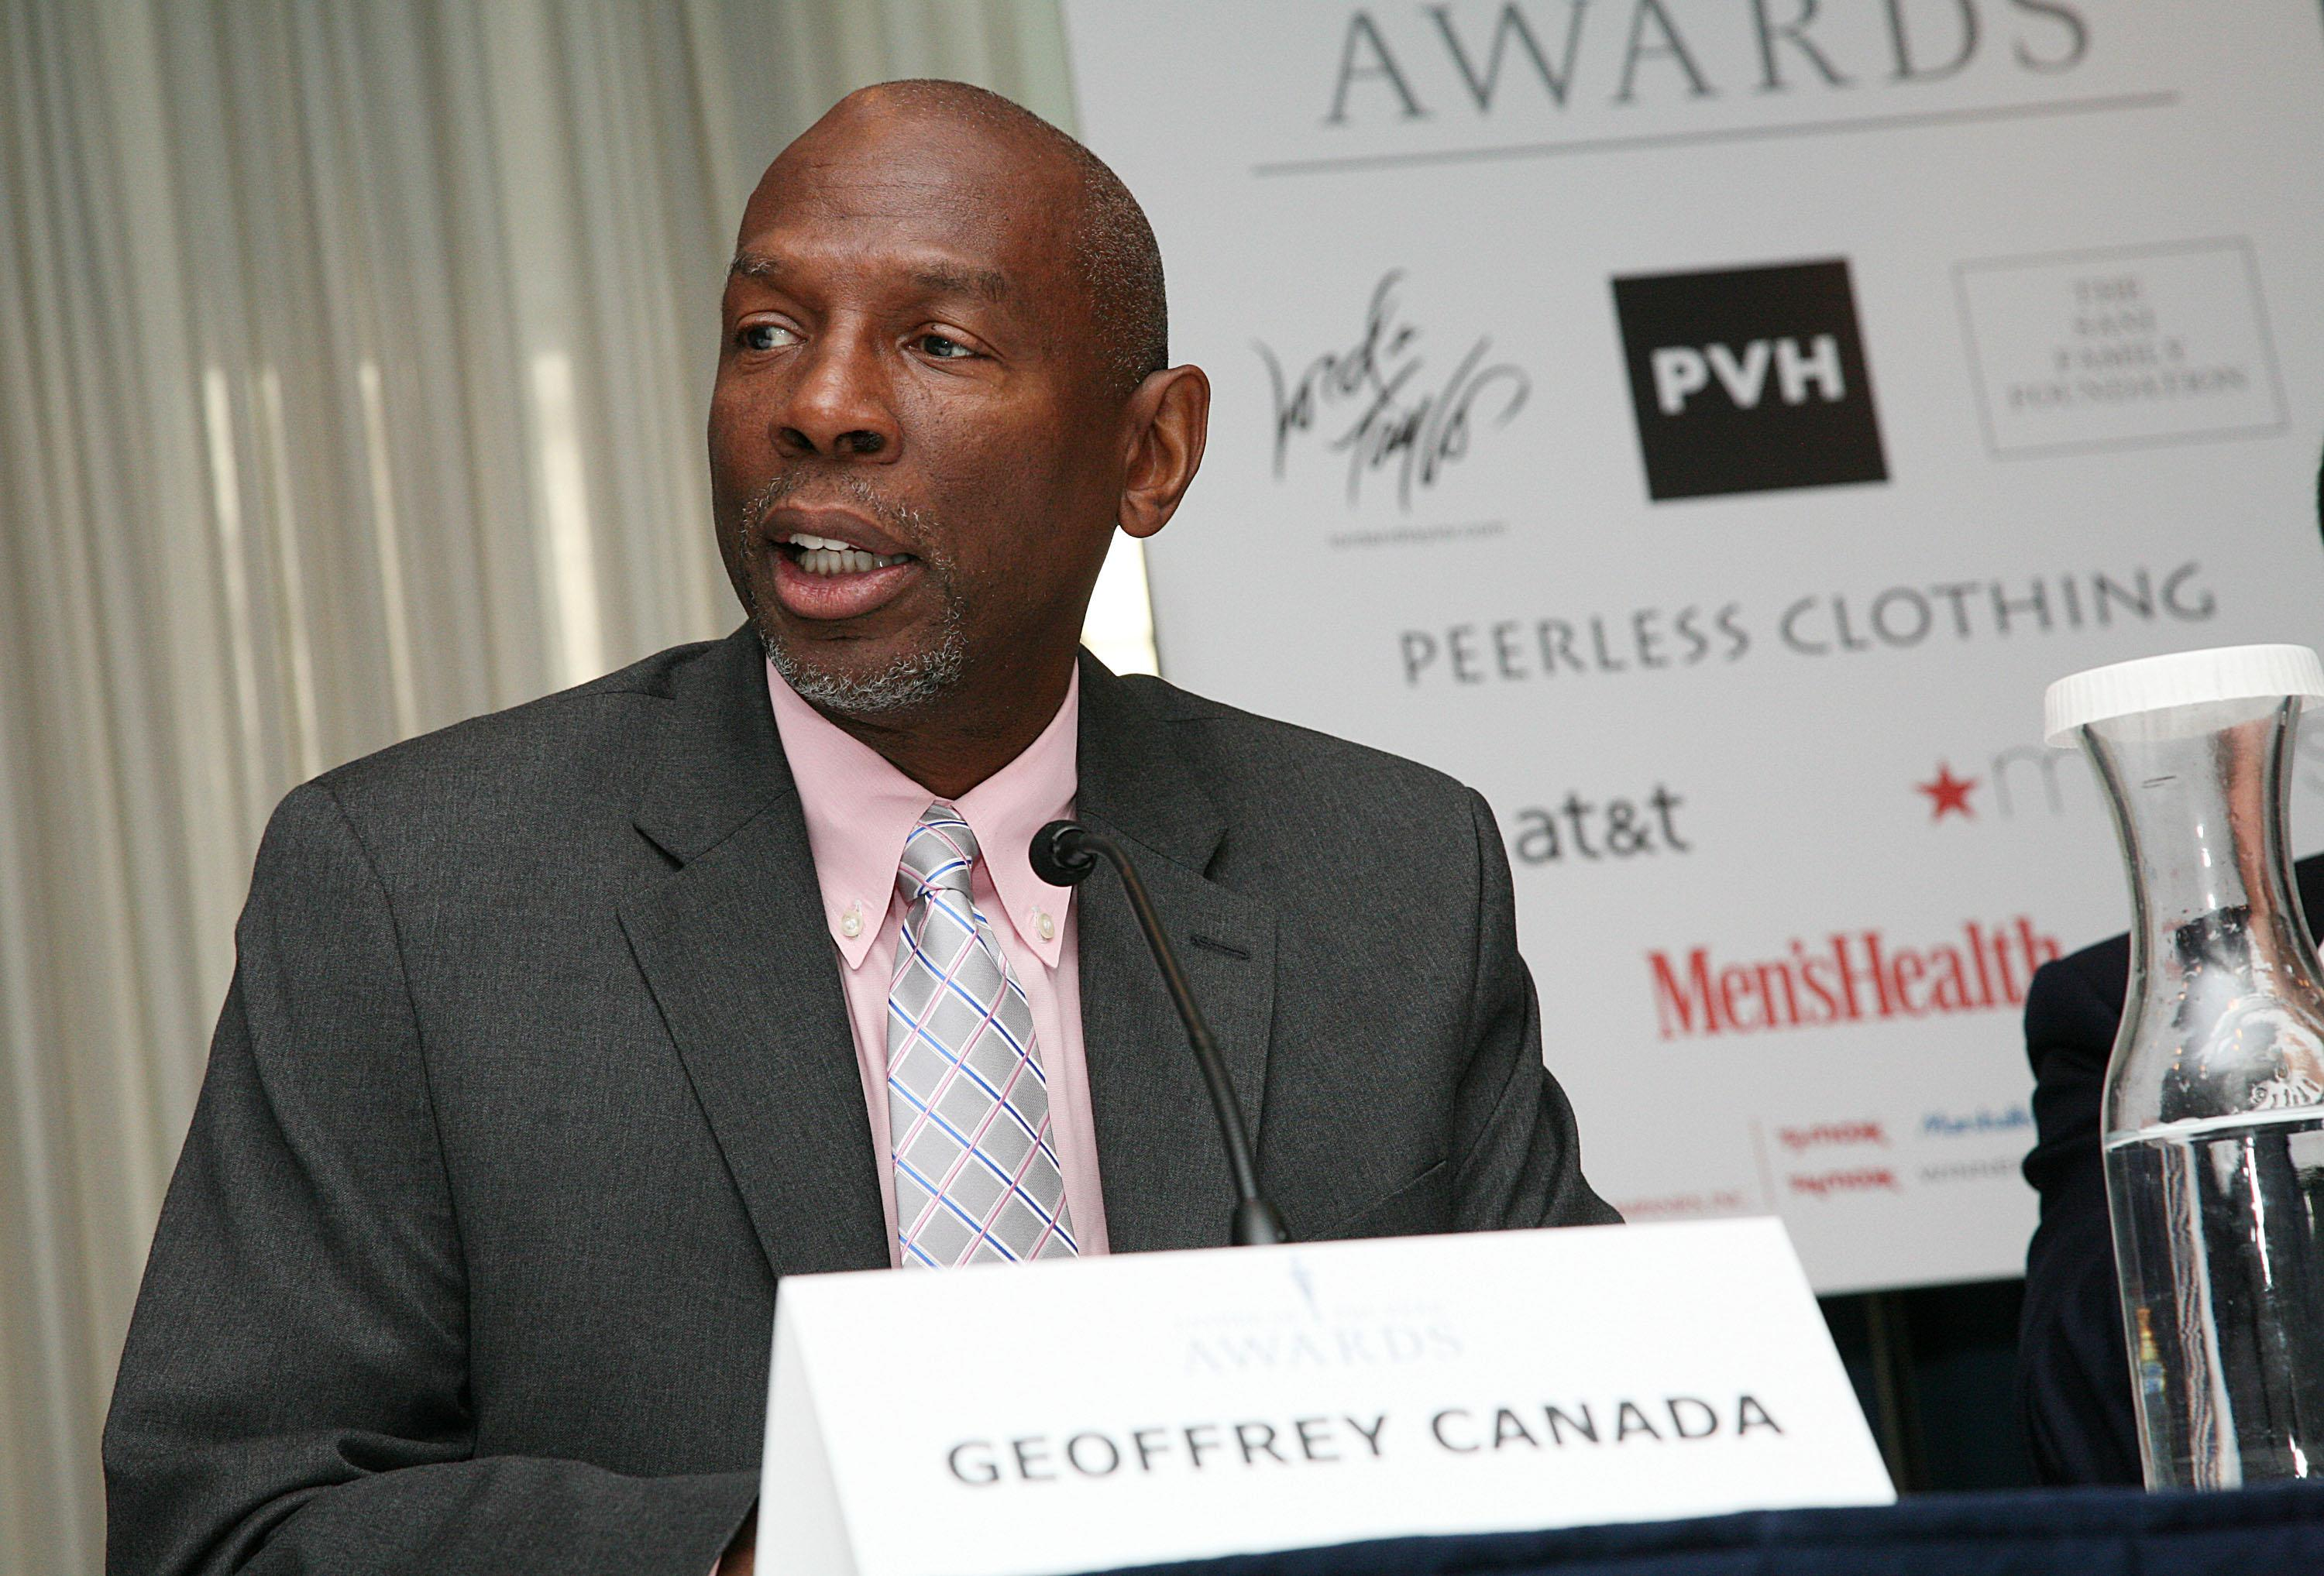 Want top teachers? Pay them more: Geoffrey Canada